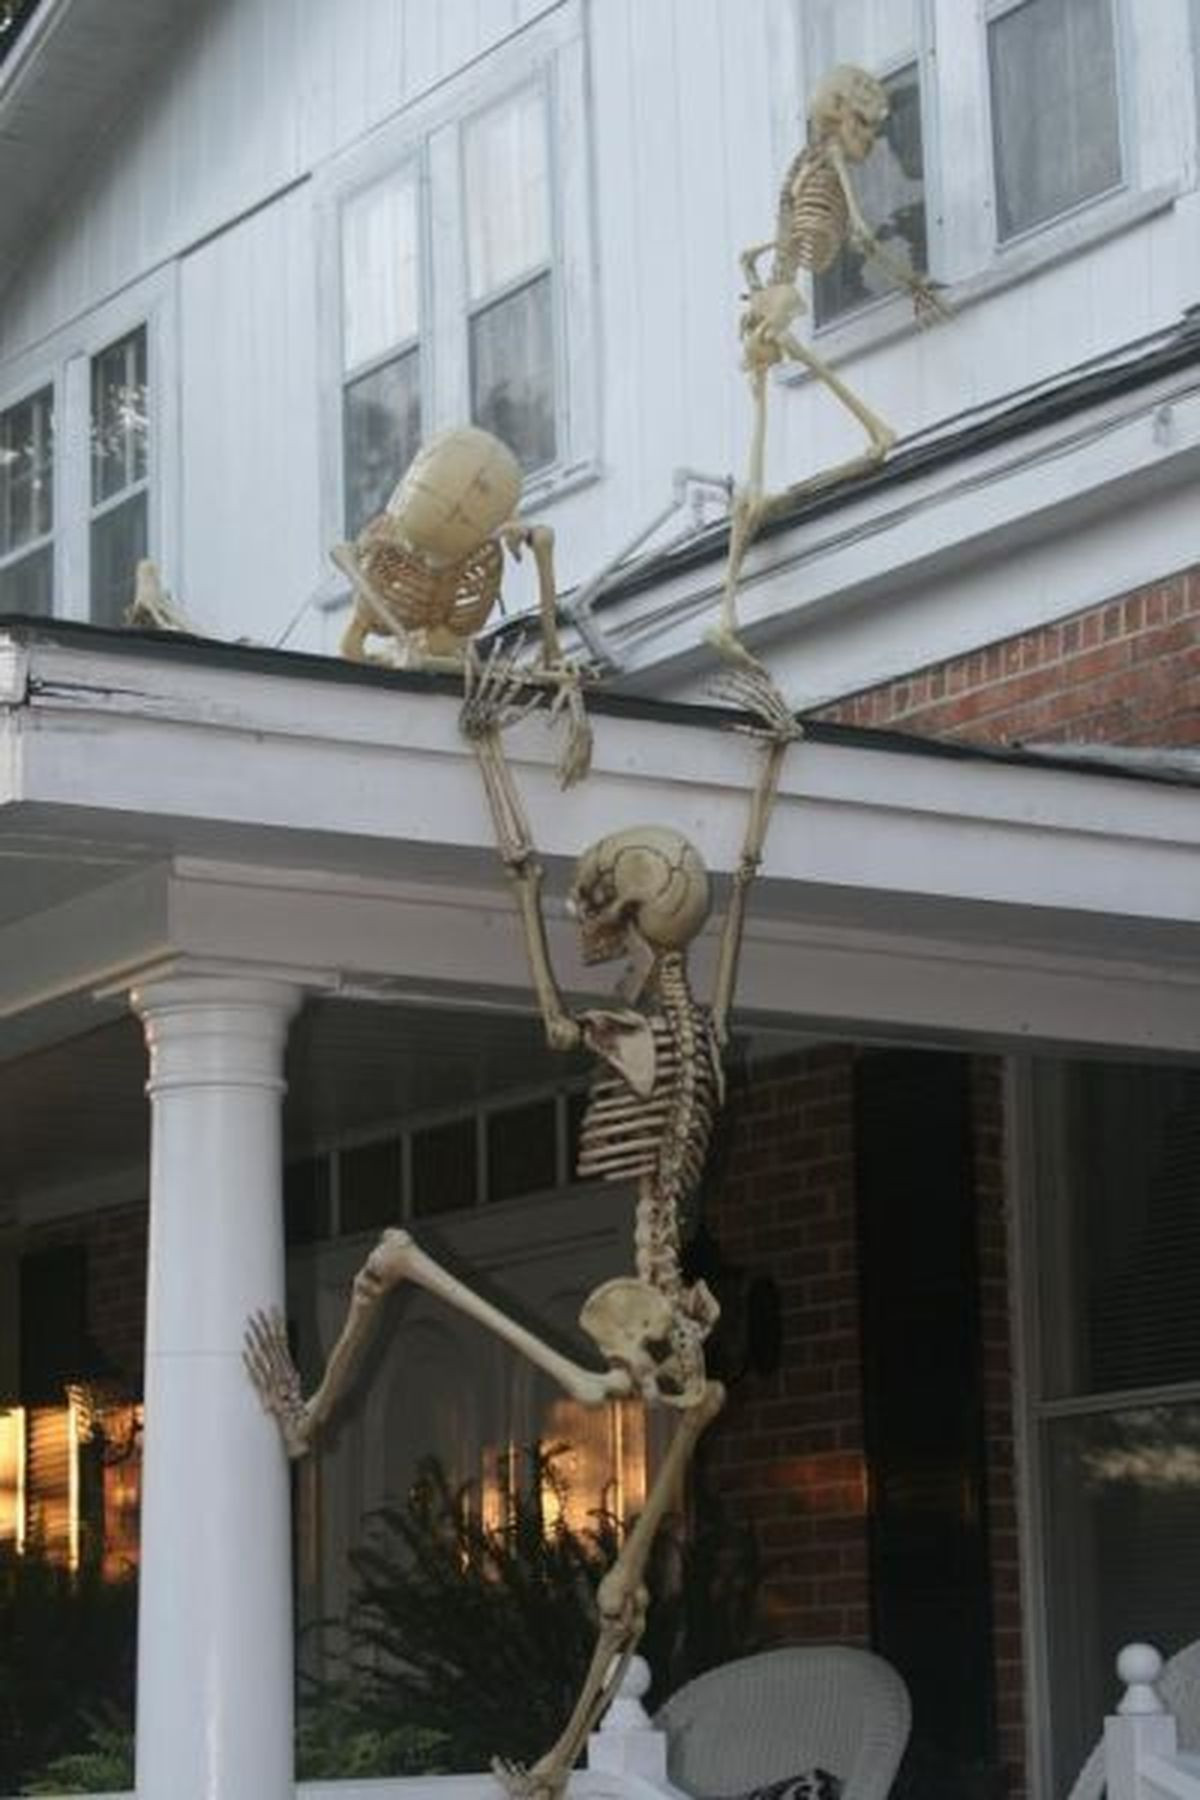 Outdoor Halloween Decorations Plete List Of Halloween Decorations Ideas In Your Home